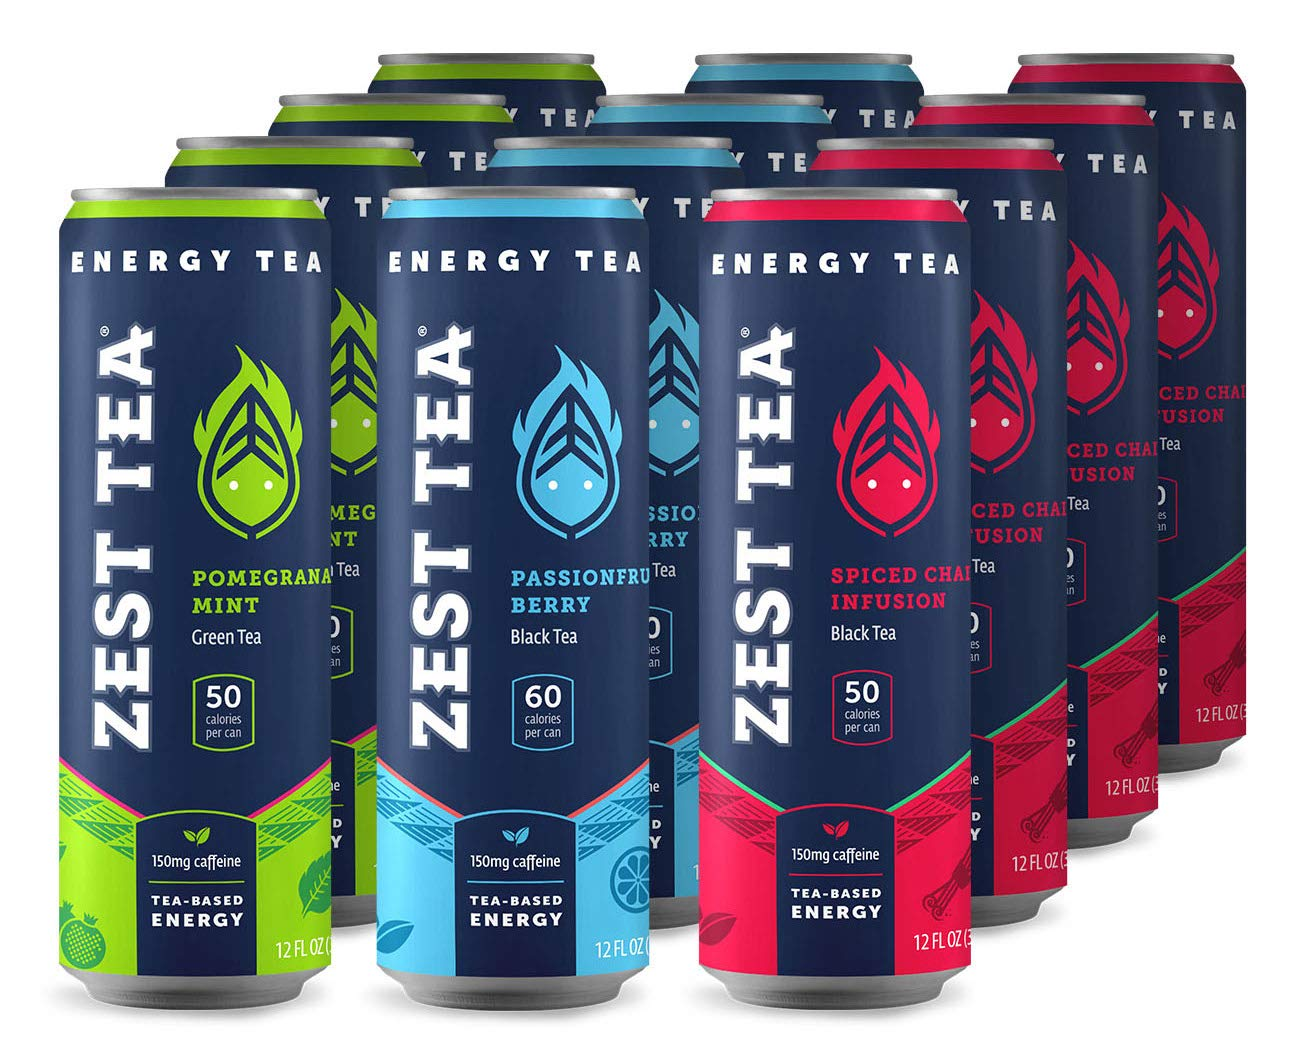 Zest Clean Energy Ice Teas, High Caffeine & Low Sugar, Natural & Healthy Coffee Replacement, 150 mg Caffeine + B12 + 100 mg L-Theanine (Amino Acid) per 12 Oz Can, 12 Pack Sampler Case by ZEST TEA